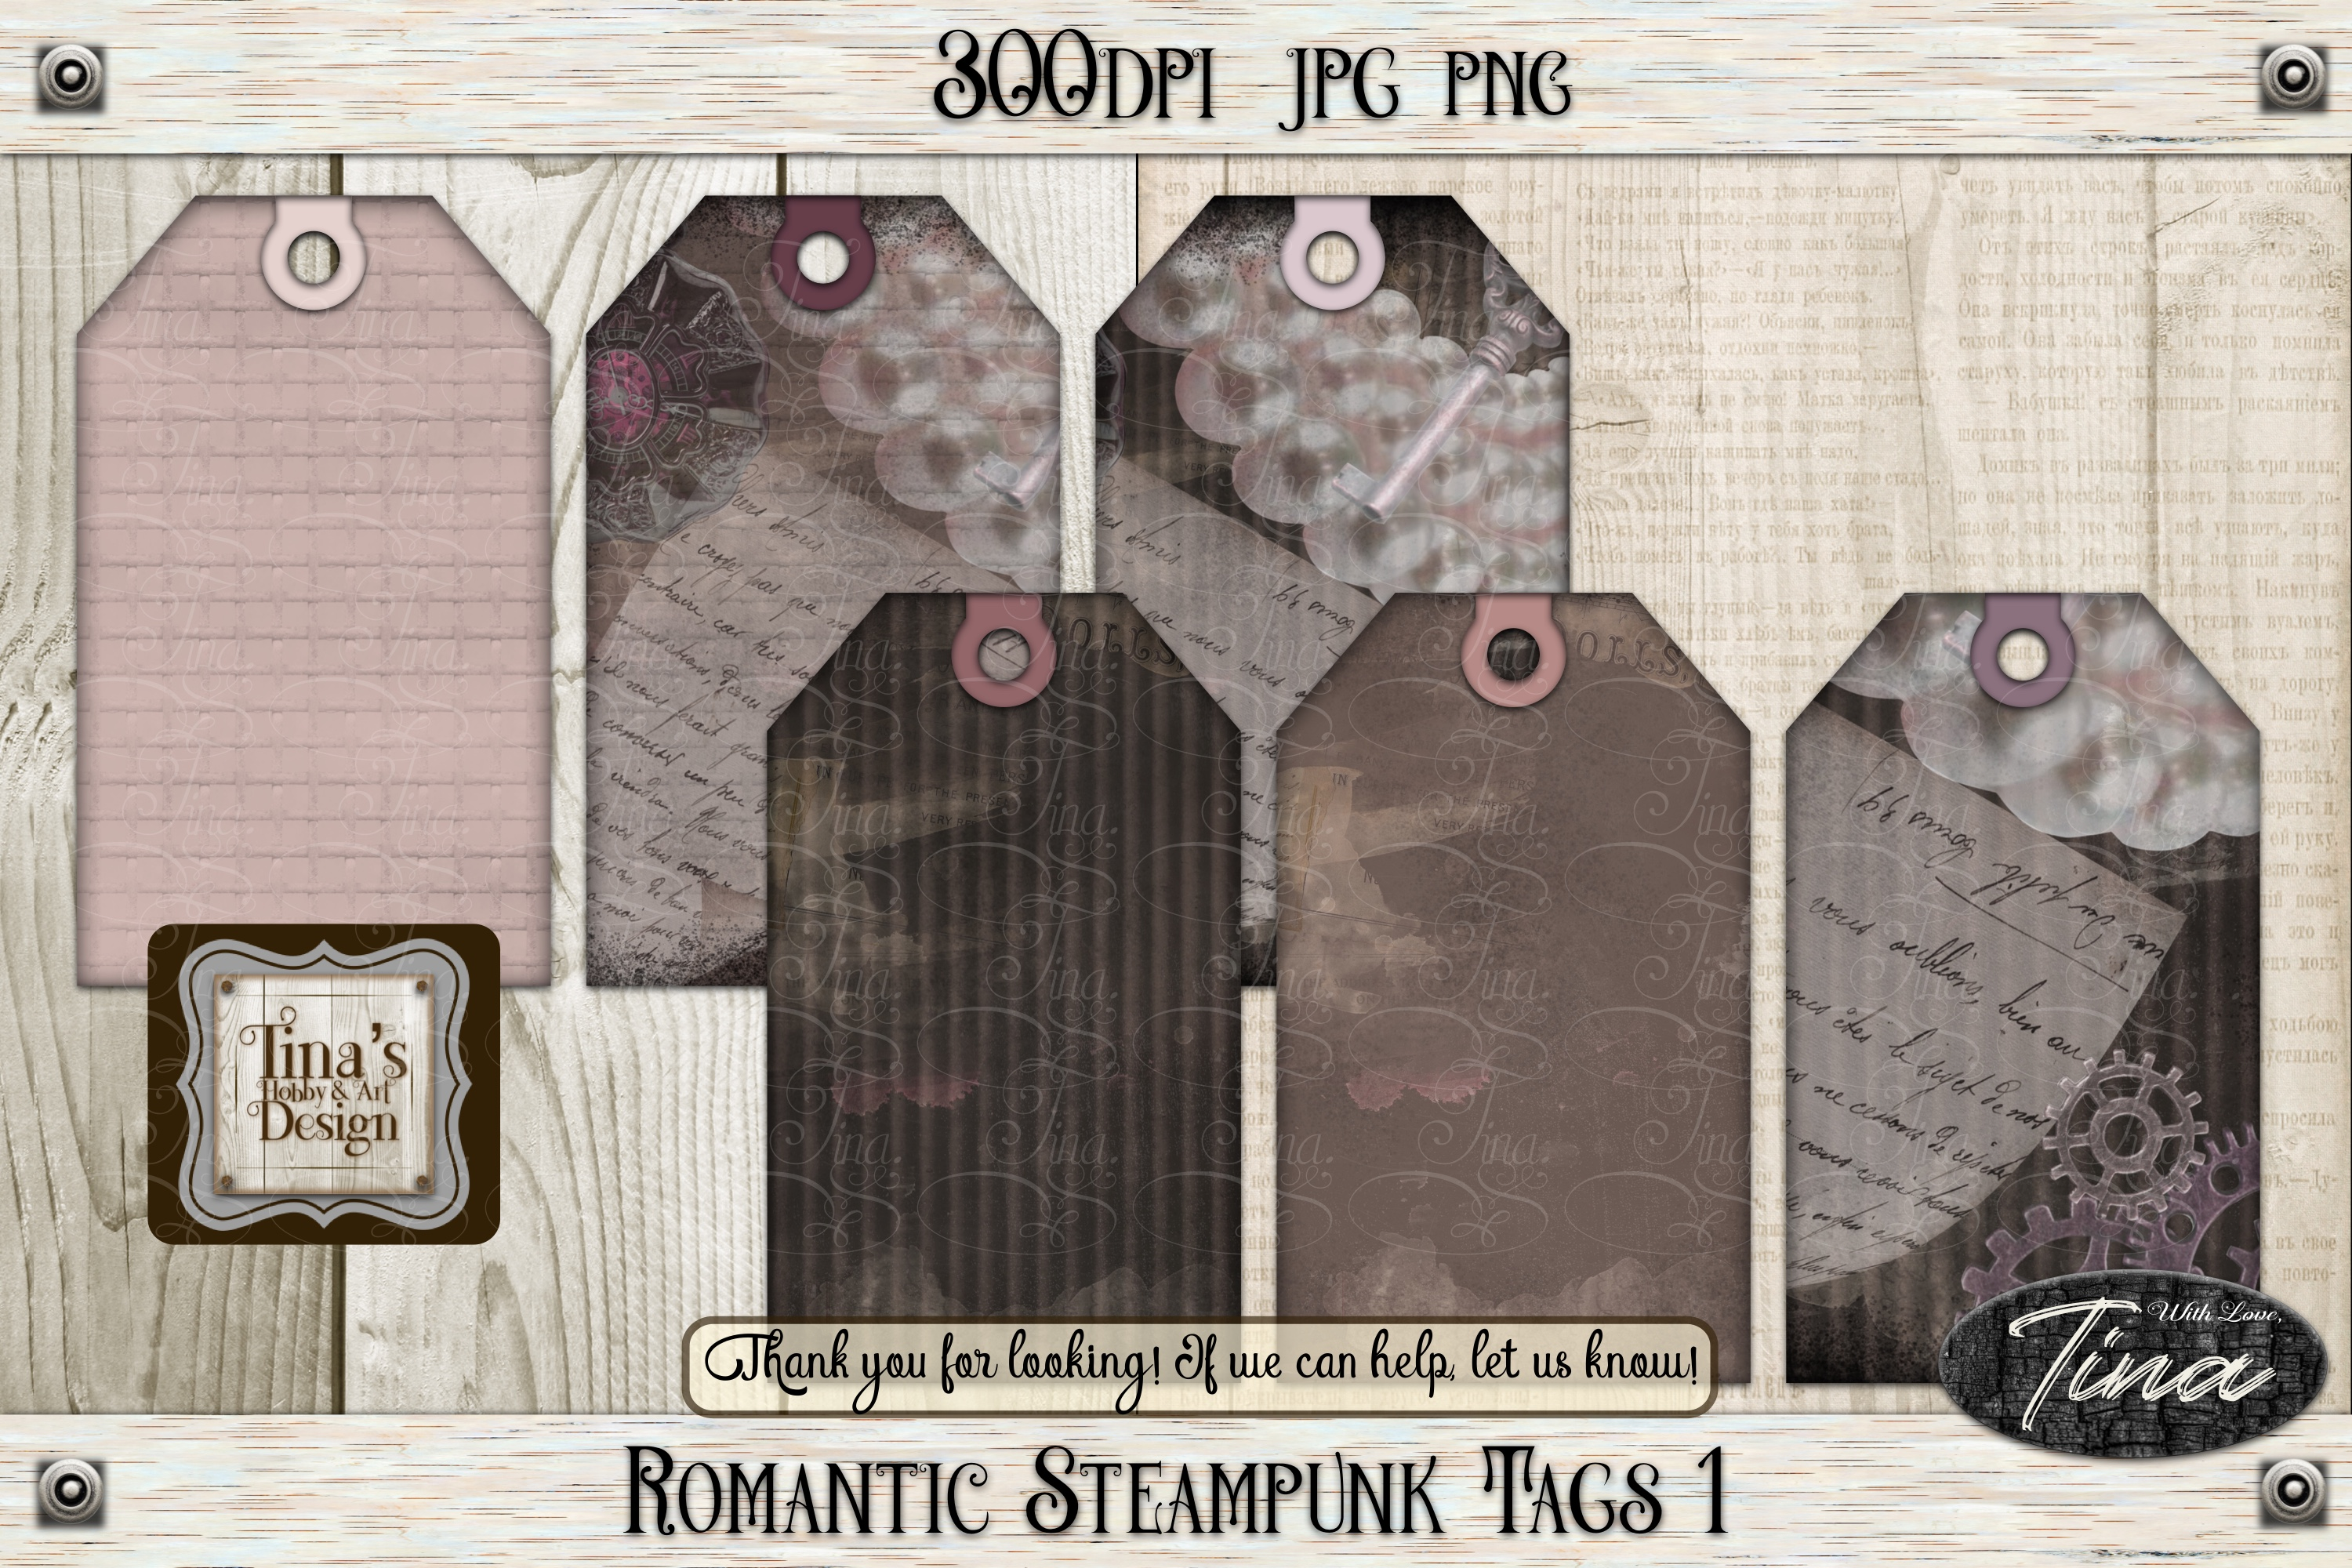 Romantic Steampunk Tags 4 Collage Mauve Grunge 101918RST4 example image 6